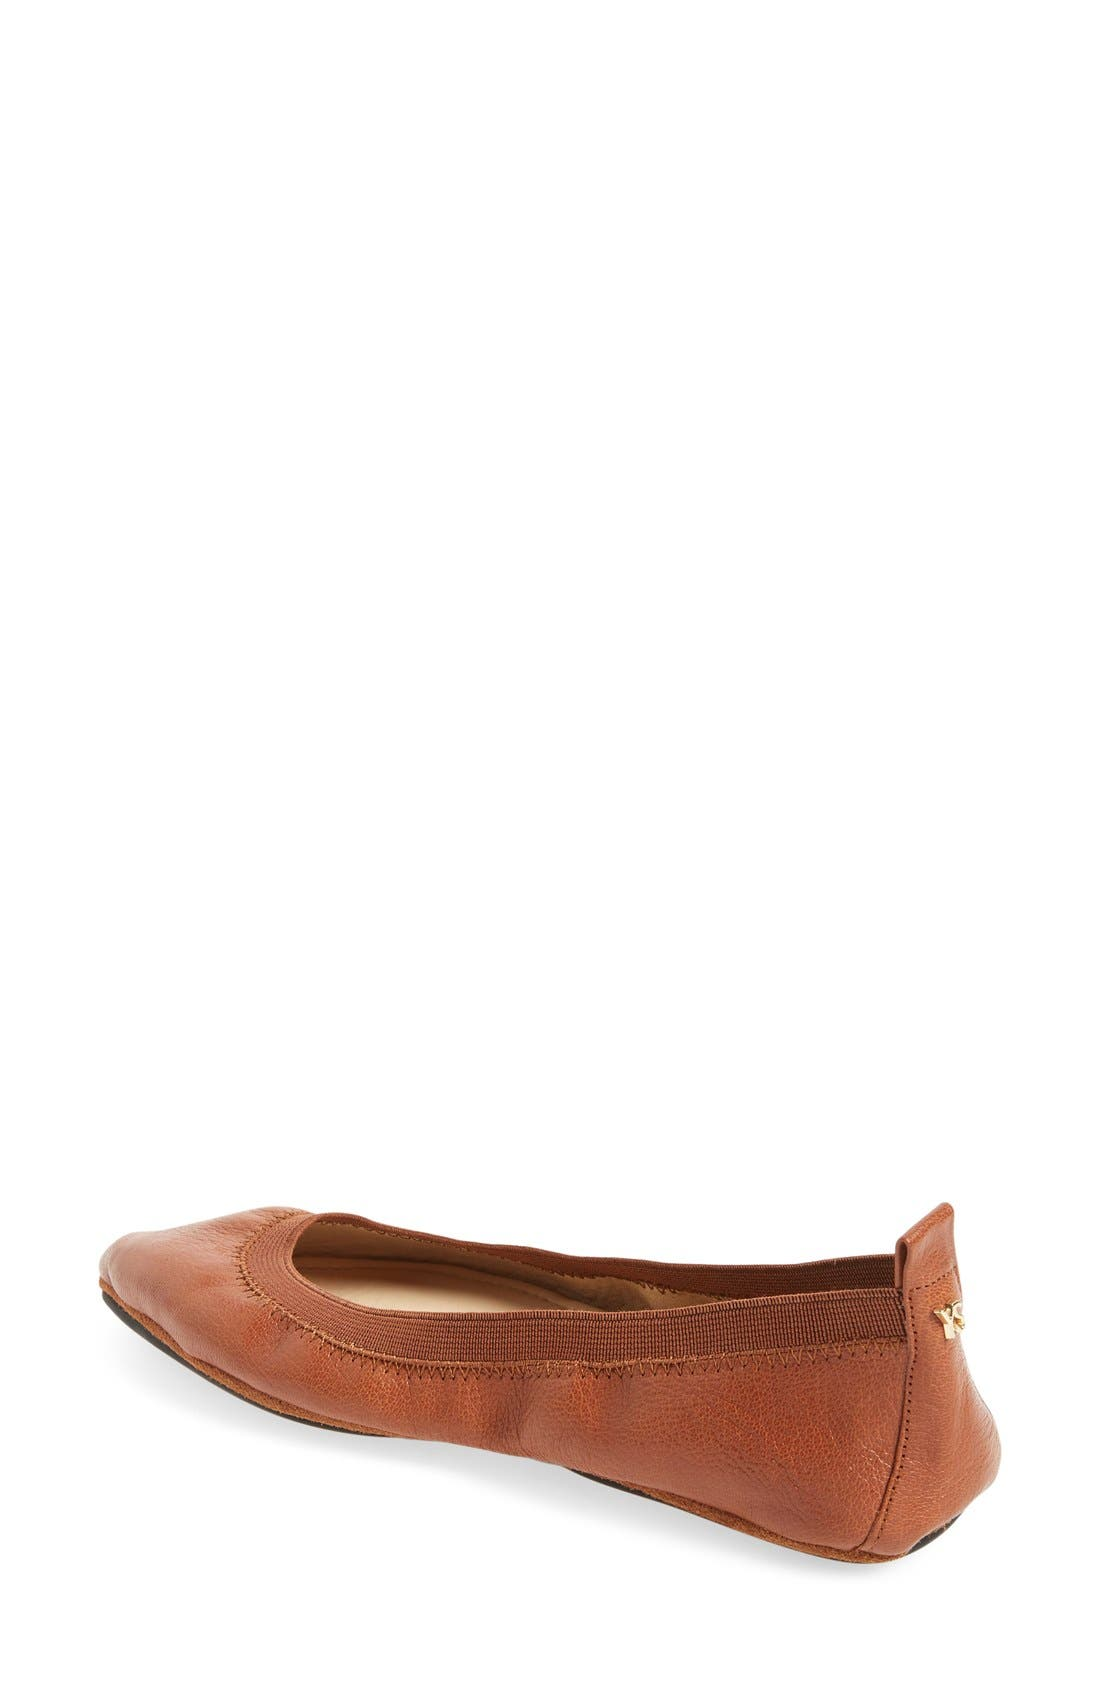 Vienna Foldable Pointy Toe Flat,                             Alternate thumbnail 2, color,                             Dark Whiskey Leather